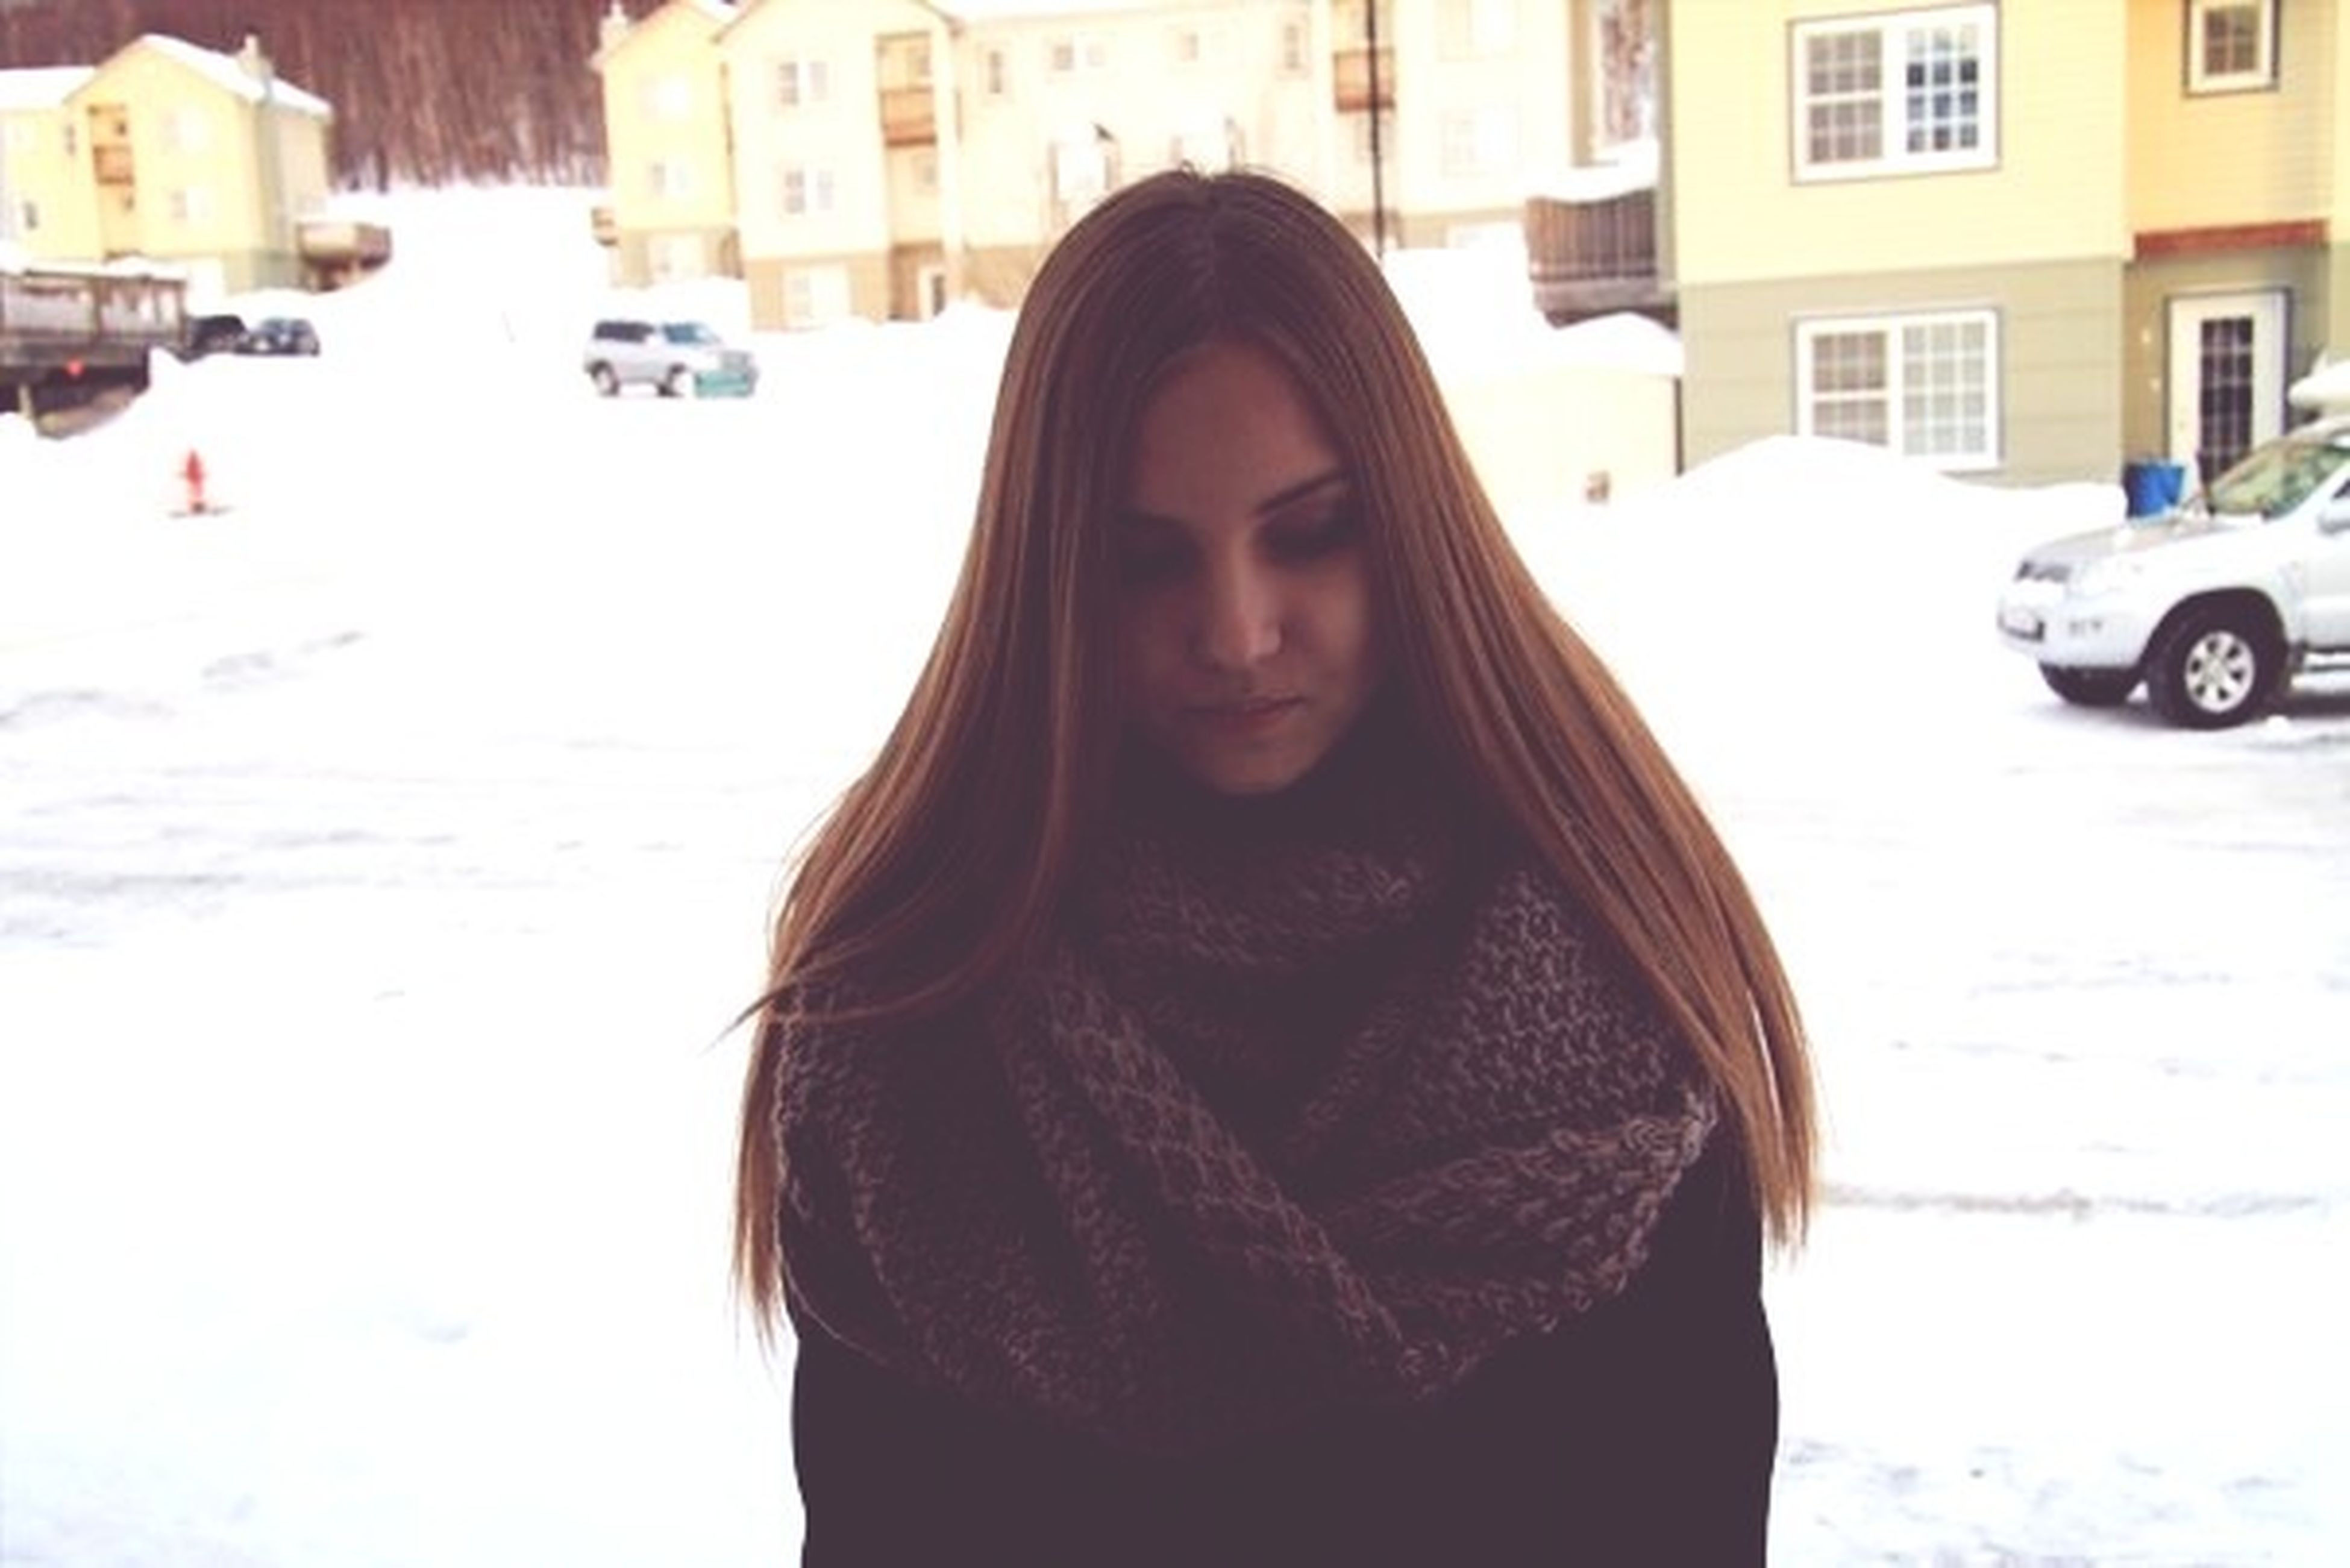 winter, snow, cold temperature, season, building exterior, architecture, lifestyles, warm clothing, weather, built structure, covering, leisure activity, street, young adult, front view, portrait, incidental people, frozen